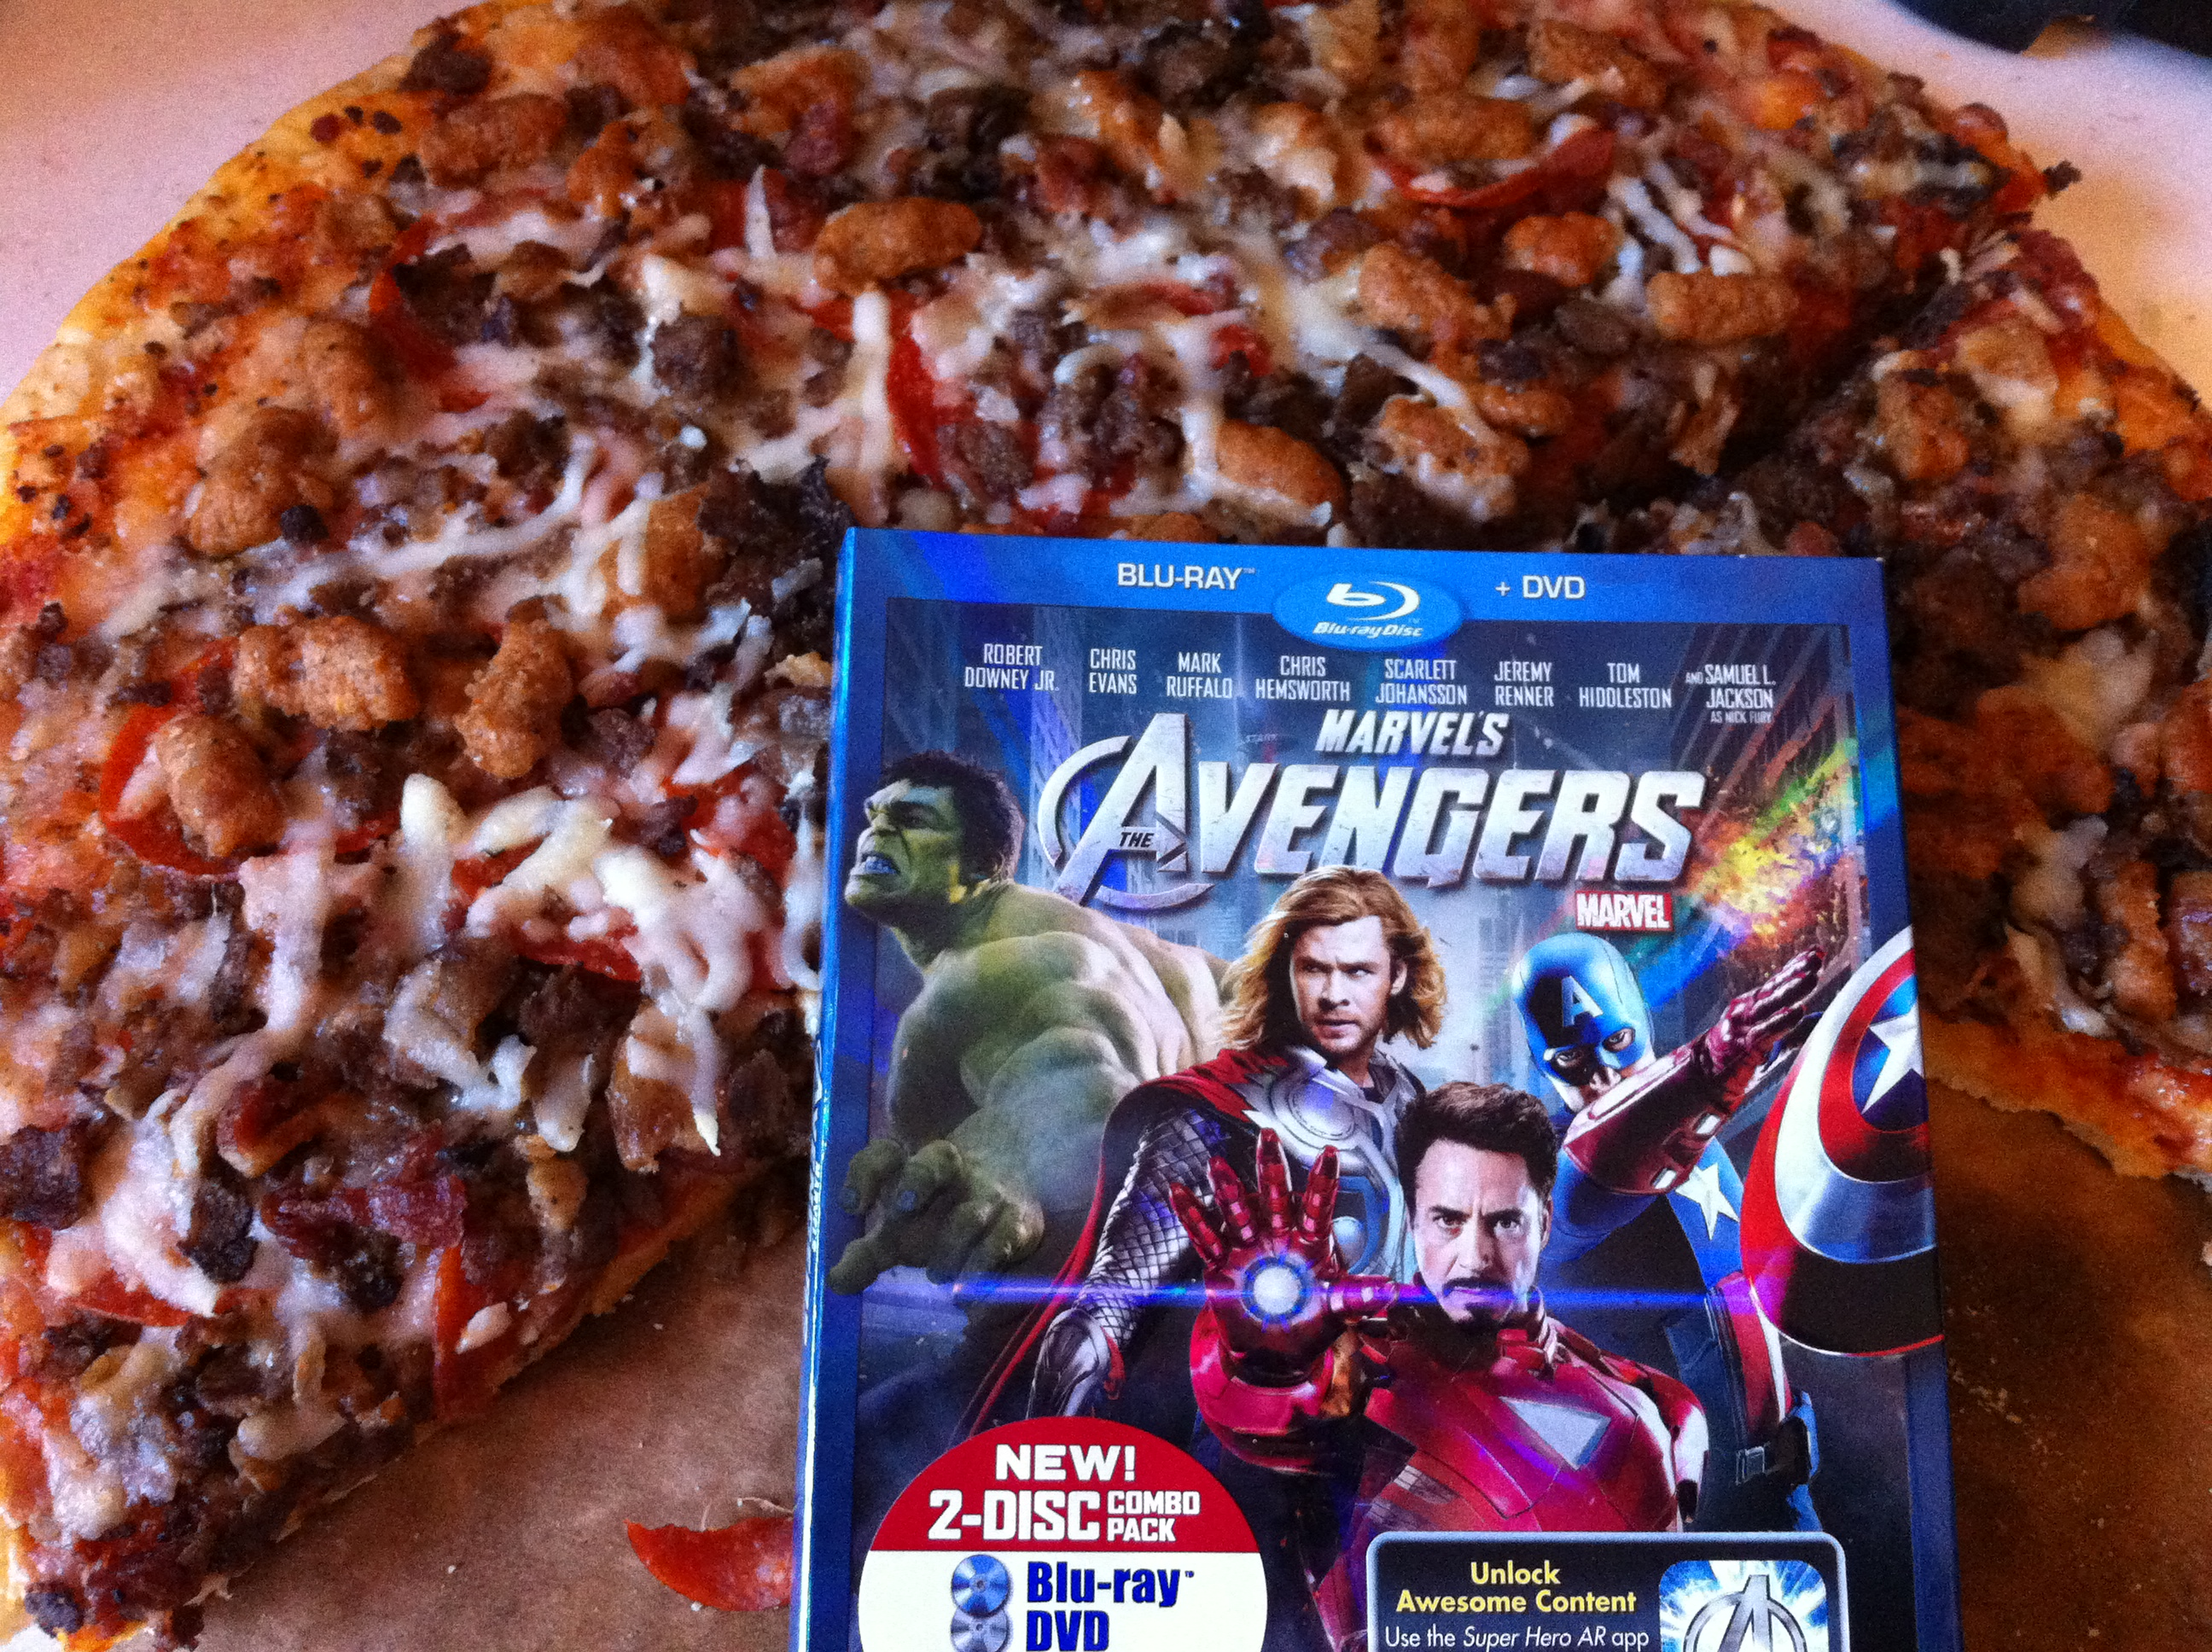 Movie Night Recipe! The Avengers and Walmart Marketside Pizza ...